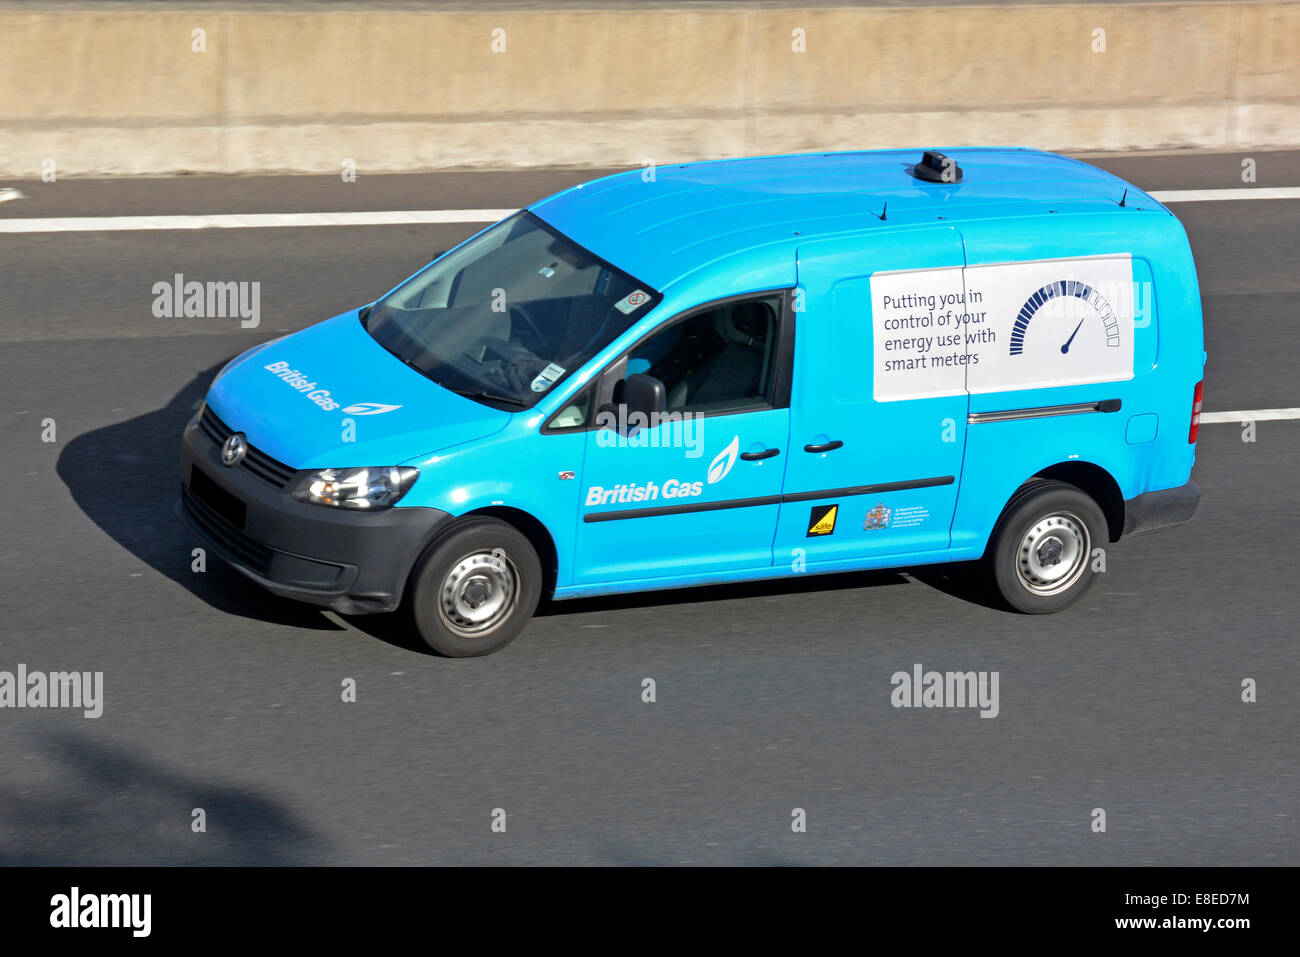 British Gas van driving along motorway with advertising panel promoting smart energy meters (obscured numberplate) - Stock Image